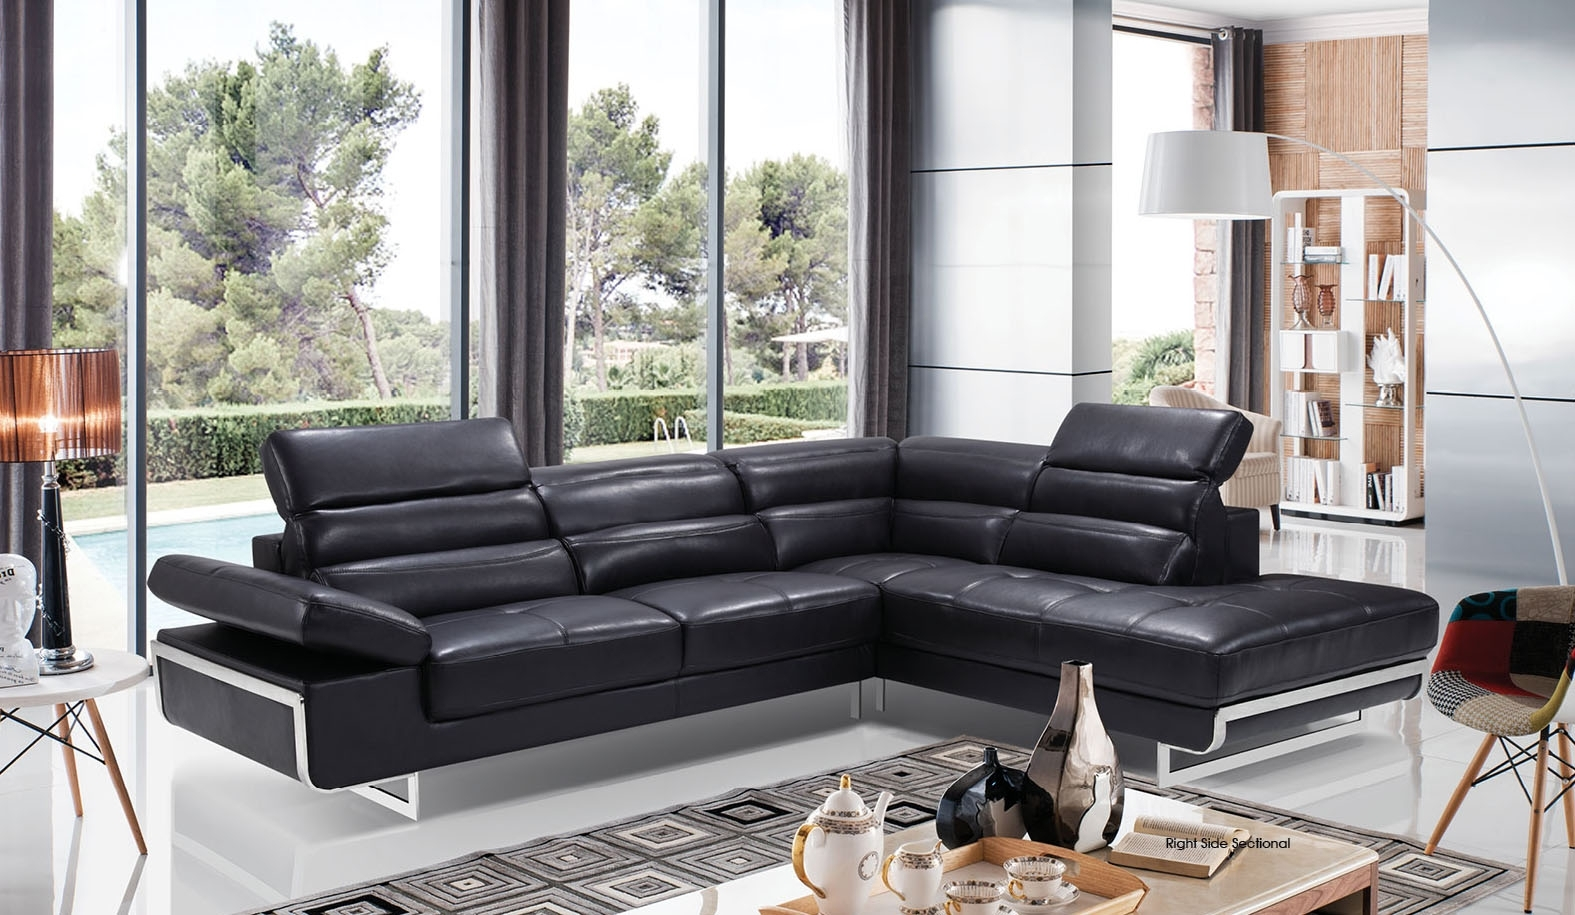 High Class Italian Leather Living Room Furniture Jacksonville Within Jacksonville Florida Sectional Sofas (Image 2 of 10)